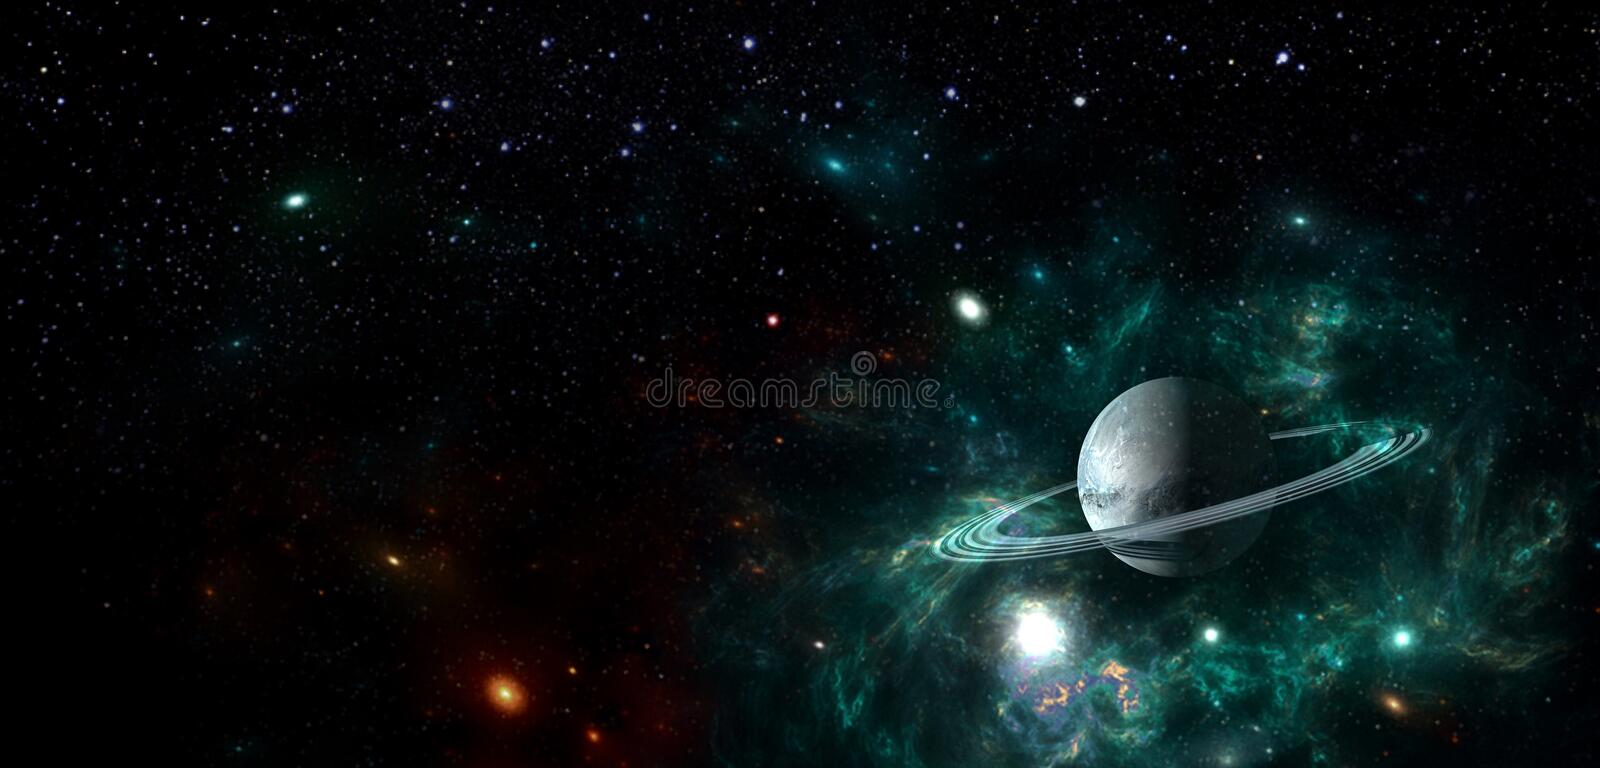 Planets and galaxy, science fiction wallpaper. Beauty of deep space. Billions of galaxy in the universe Cosmic art background stock illustration